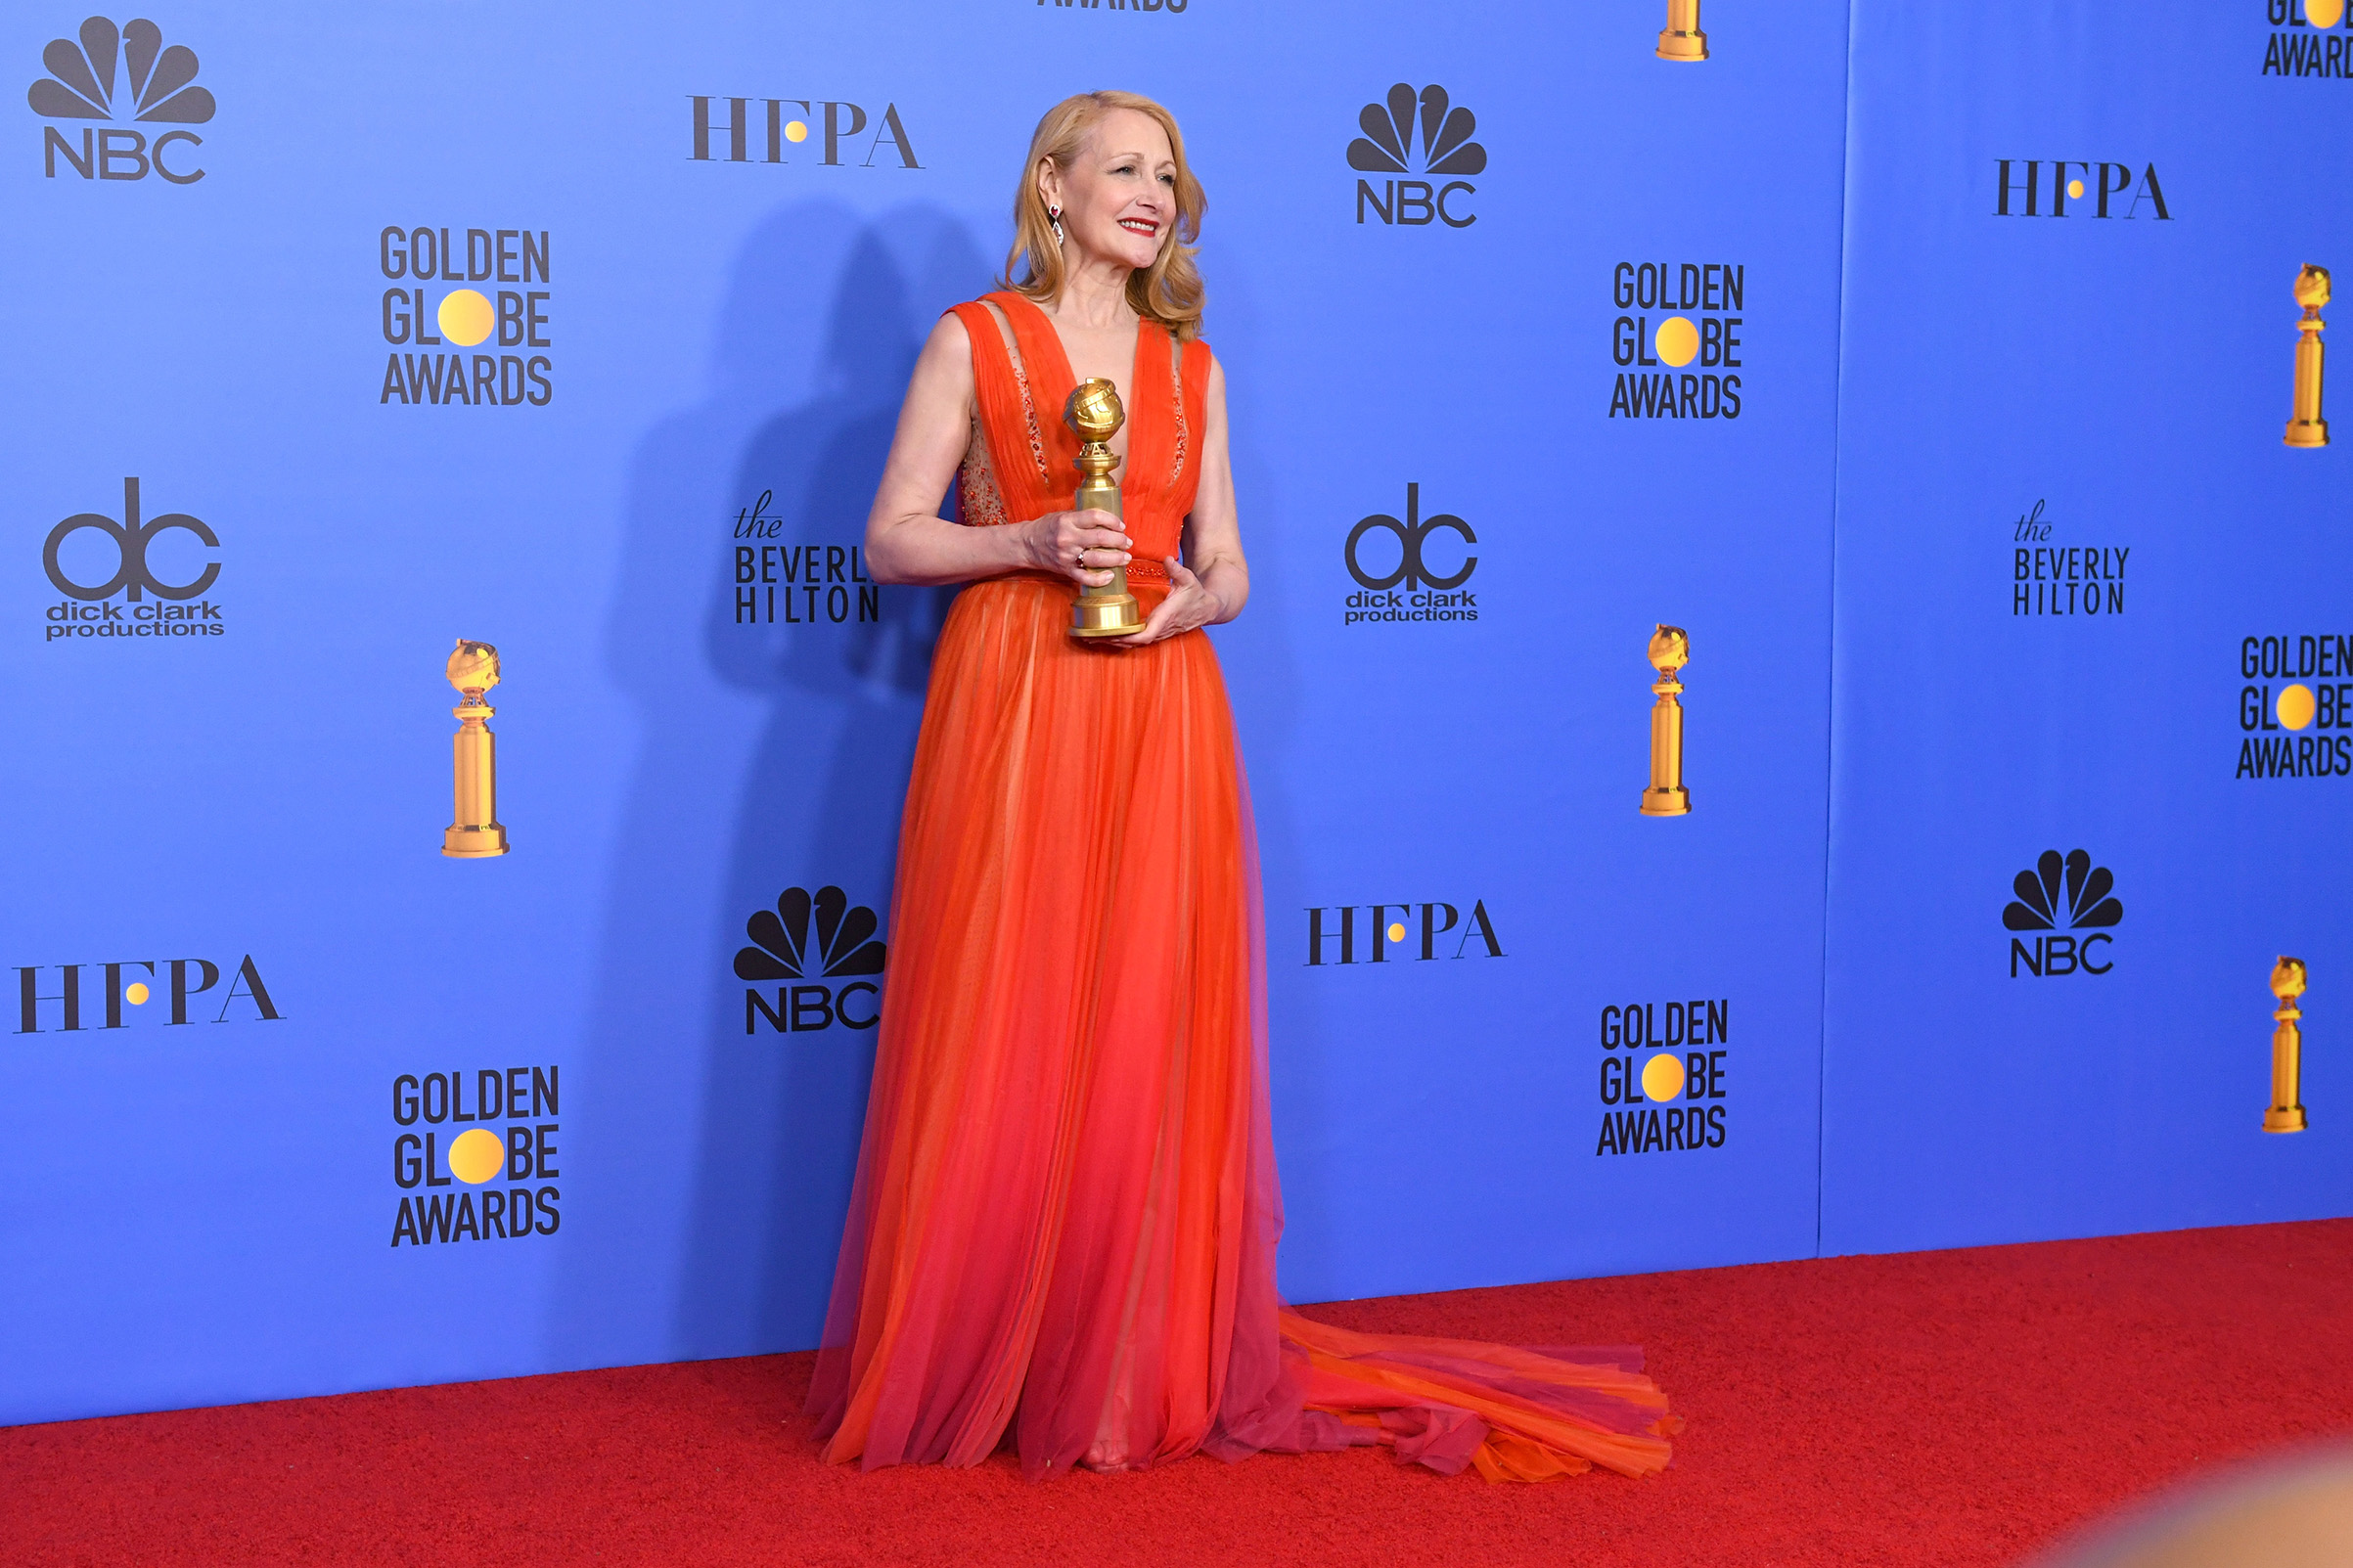 Best Performance by an Actress in a Supporting Role in a Series, Limited Series or Motion Picture Made for Television for 'Sharp Objects' winner Patricia Clarkson poses in the press room during the 76th Annual Golden Globe Awards.